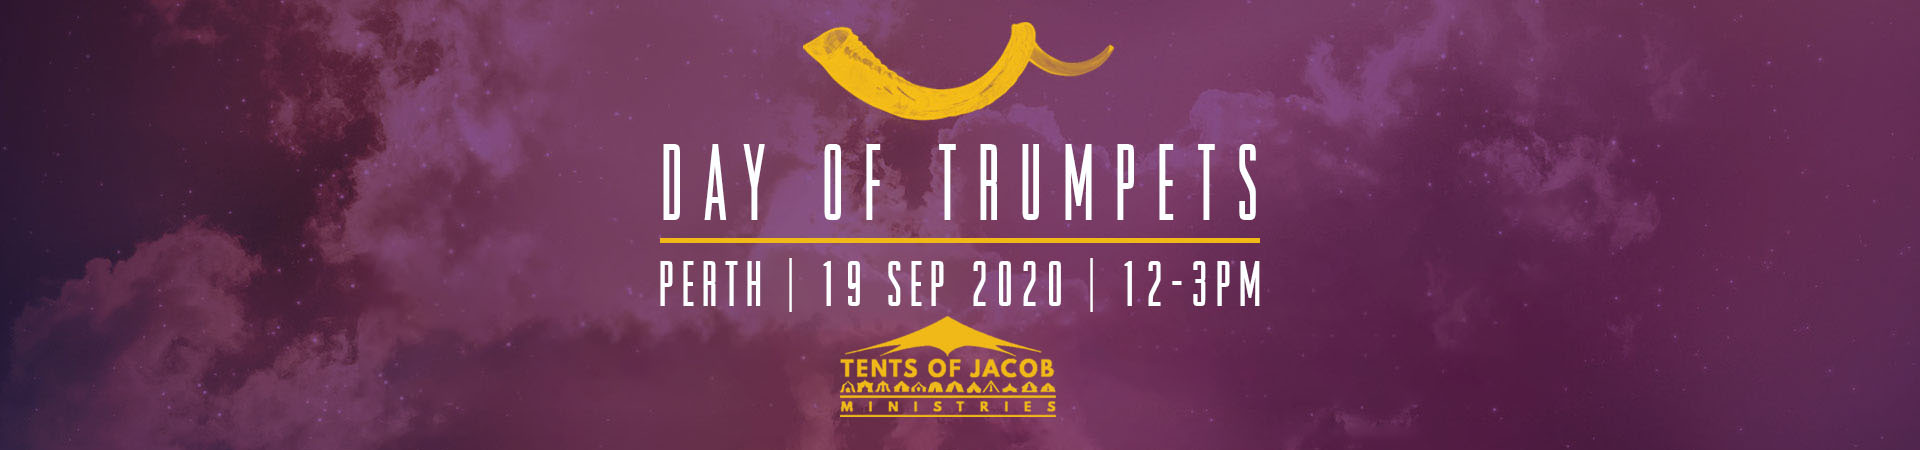 DAY-OF-TRUMPETS-2020-WIDE